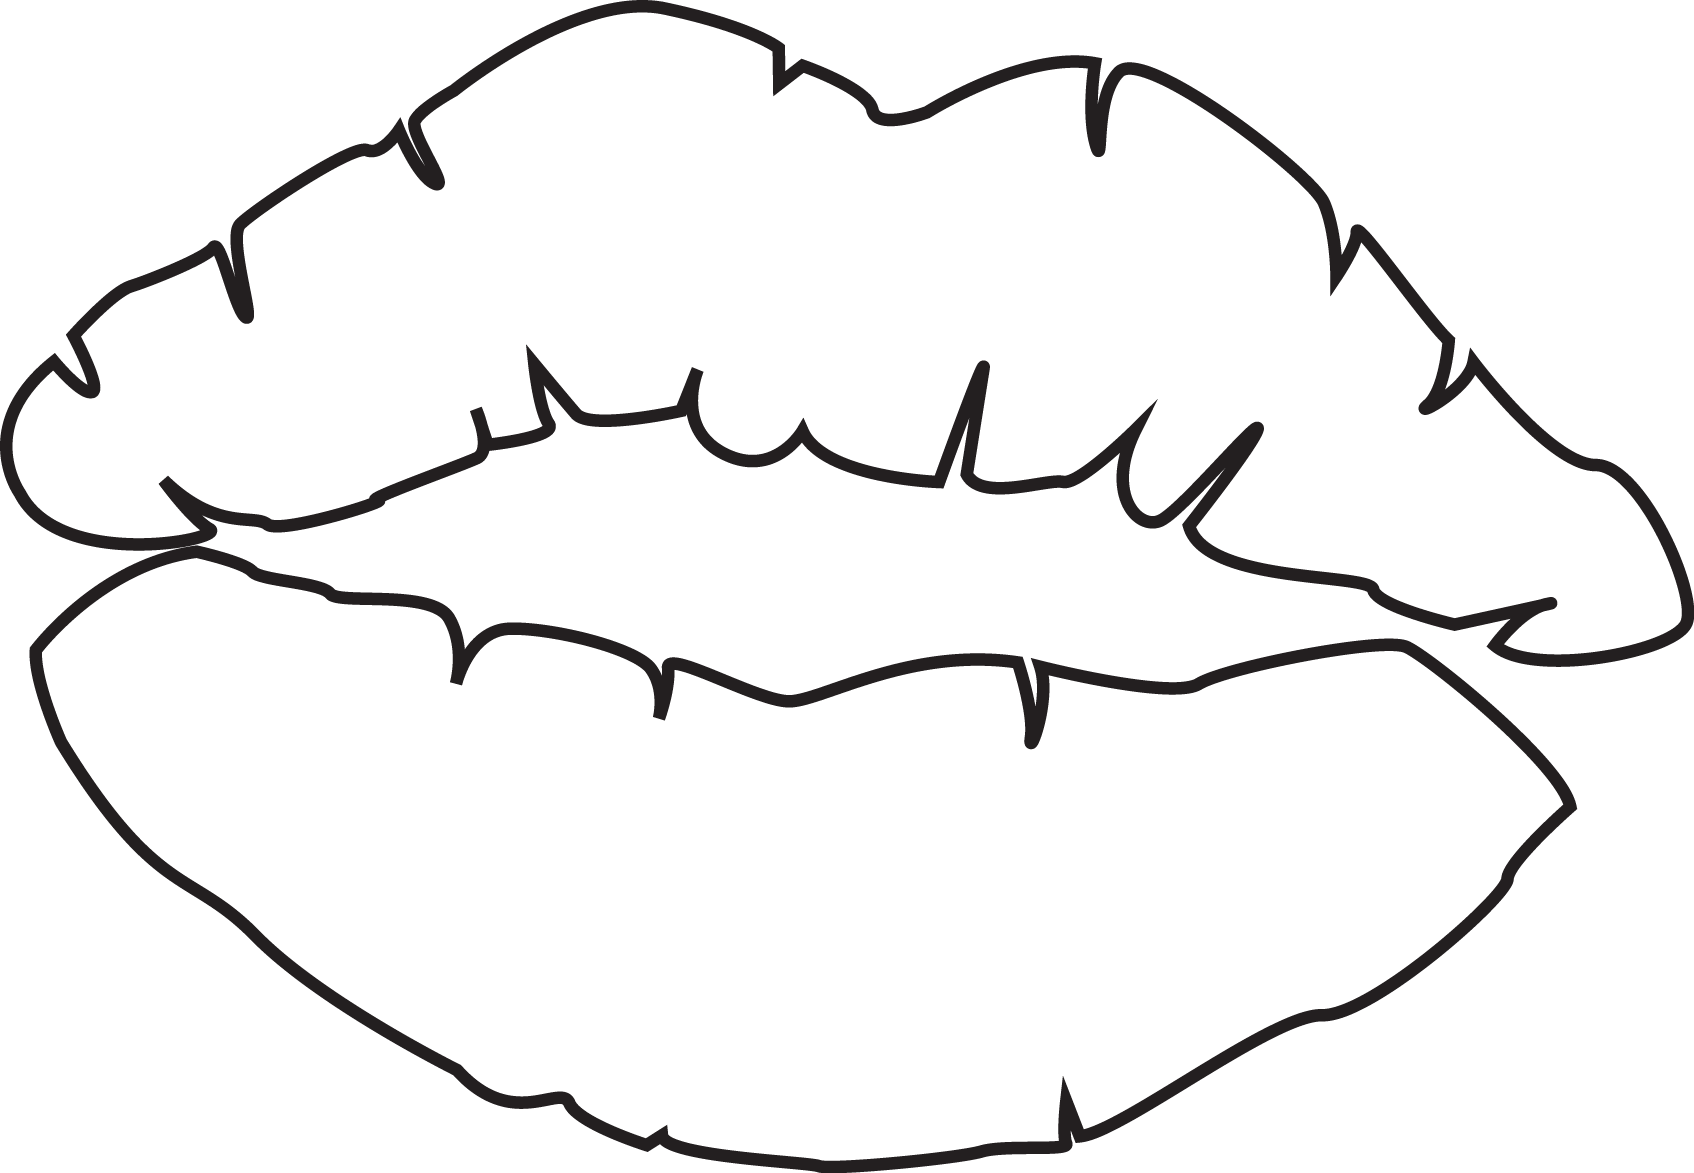 Line Drawing Of Lips